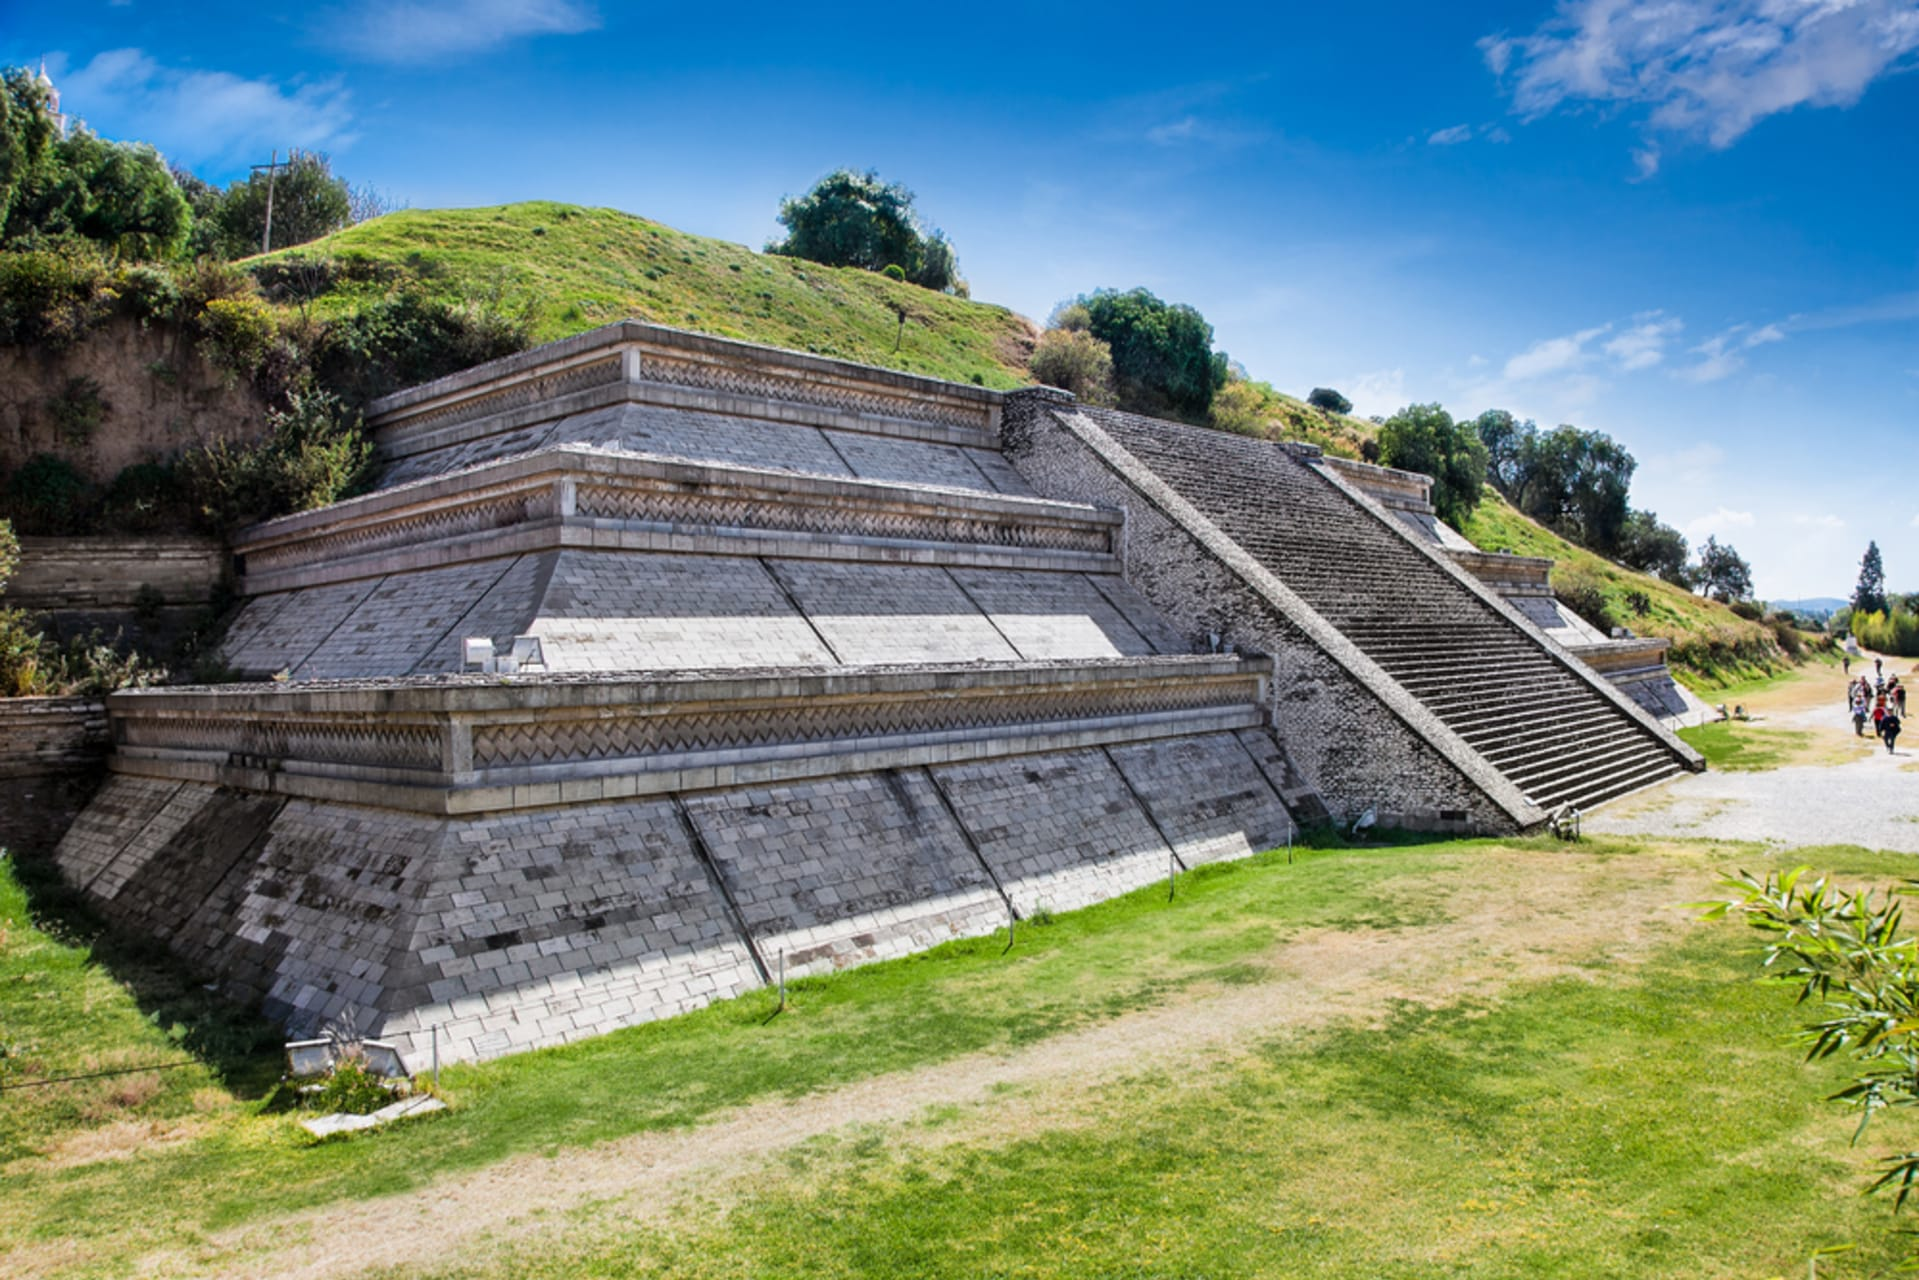 Puebla - The Largest Pyramid in the World isn't in Egypt